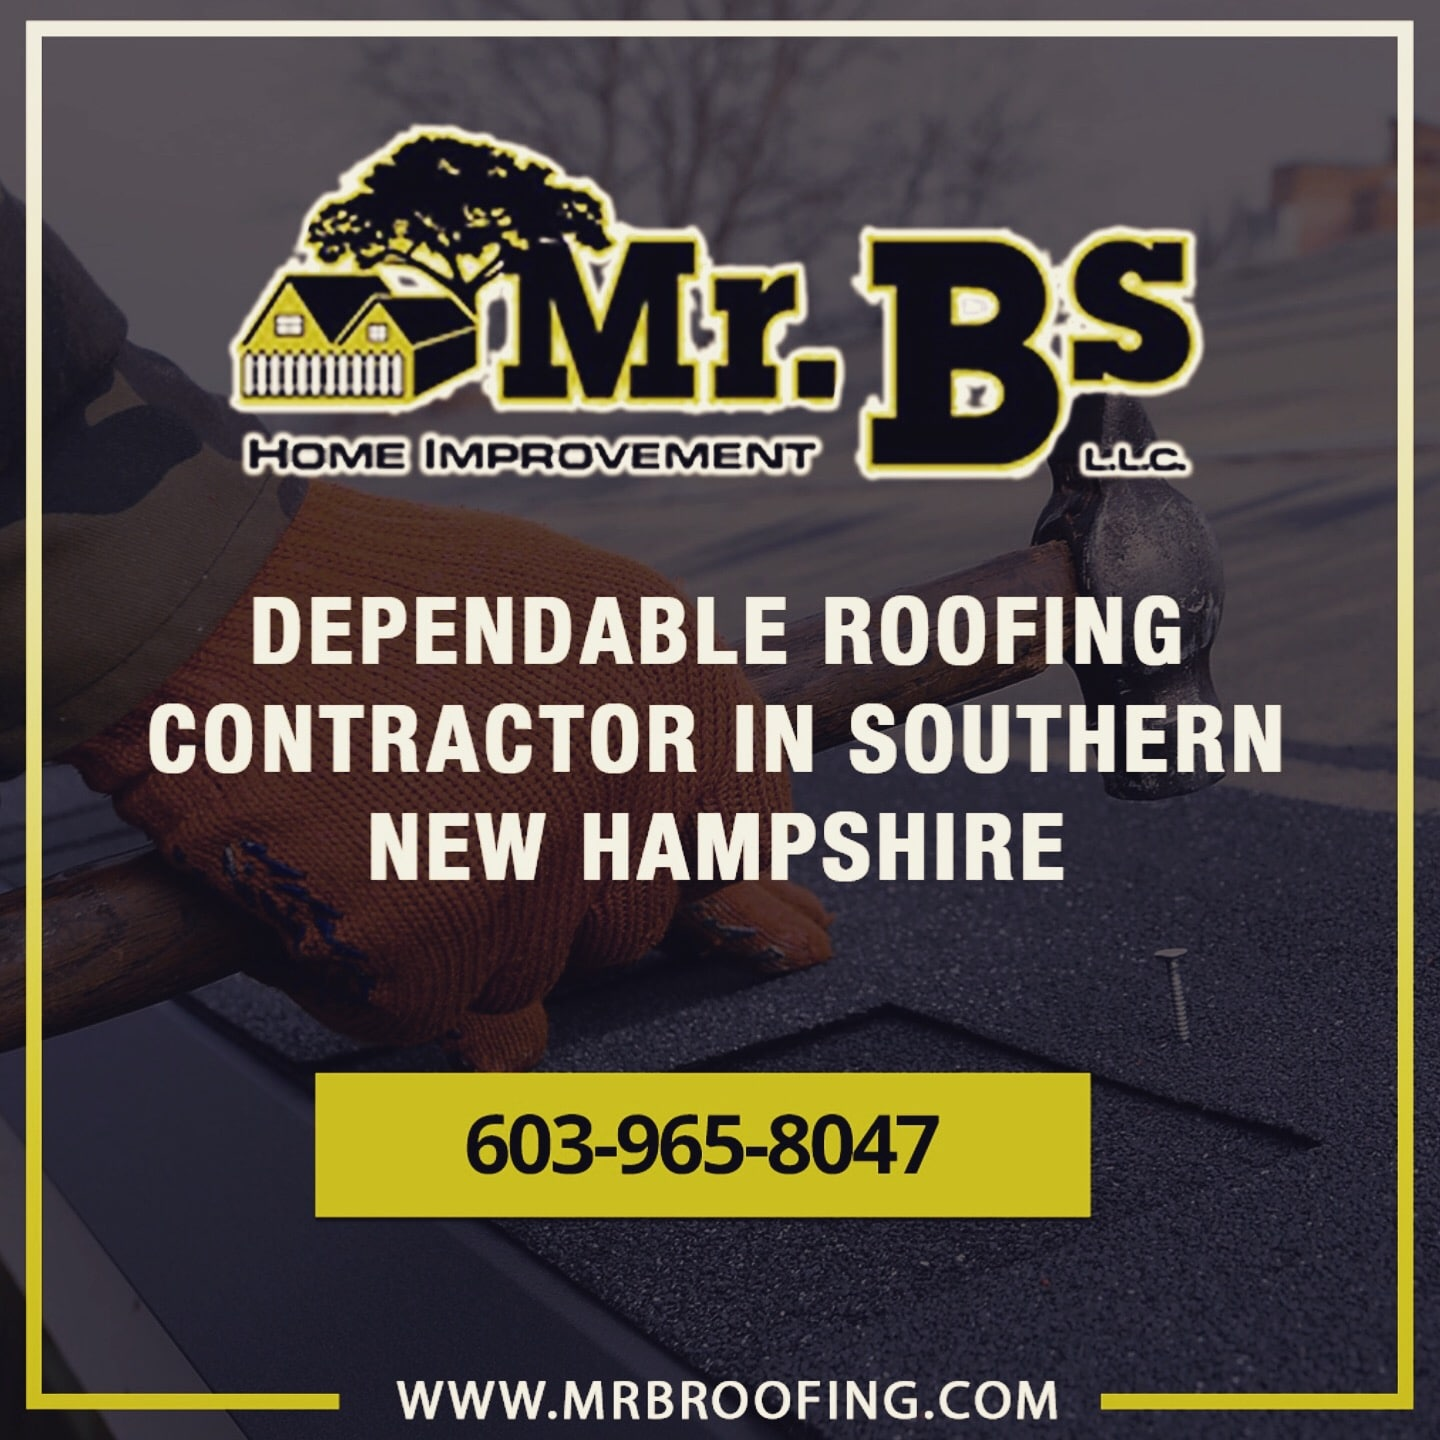 MR. Bs Roofing LLC